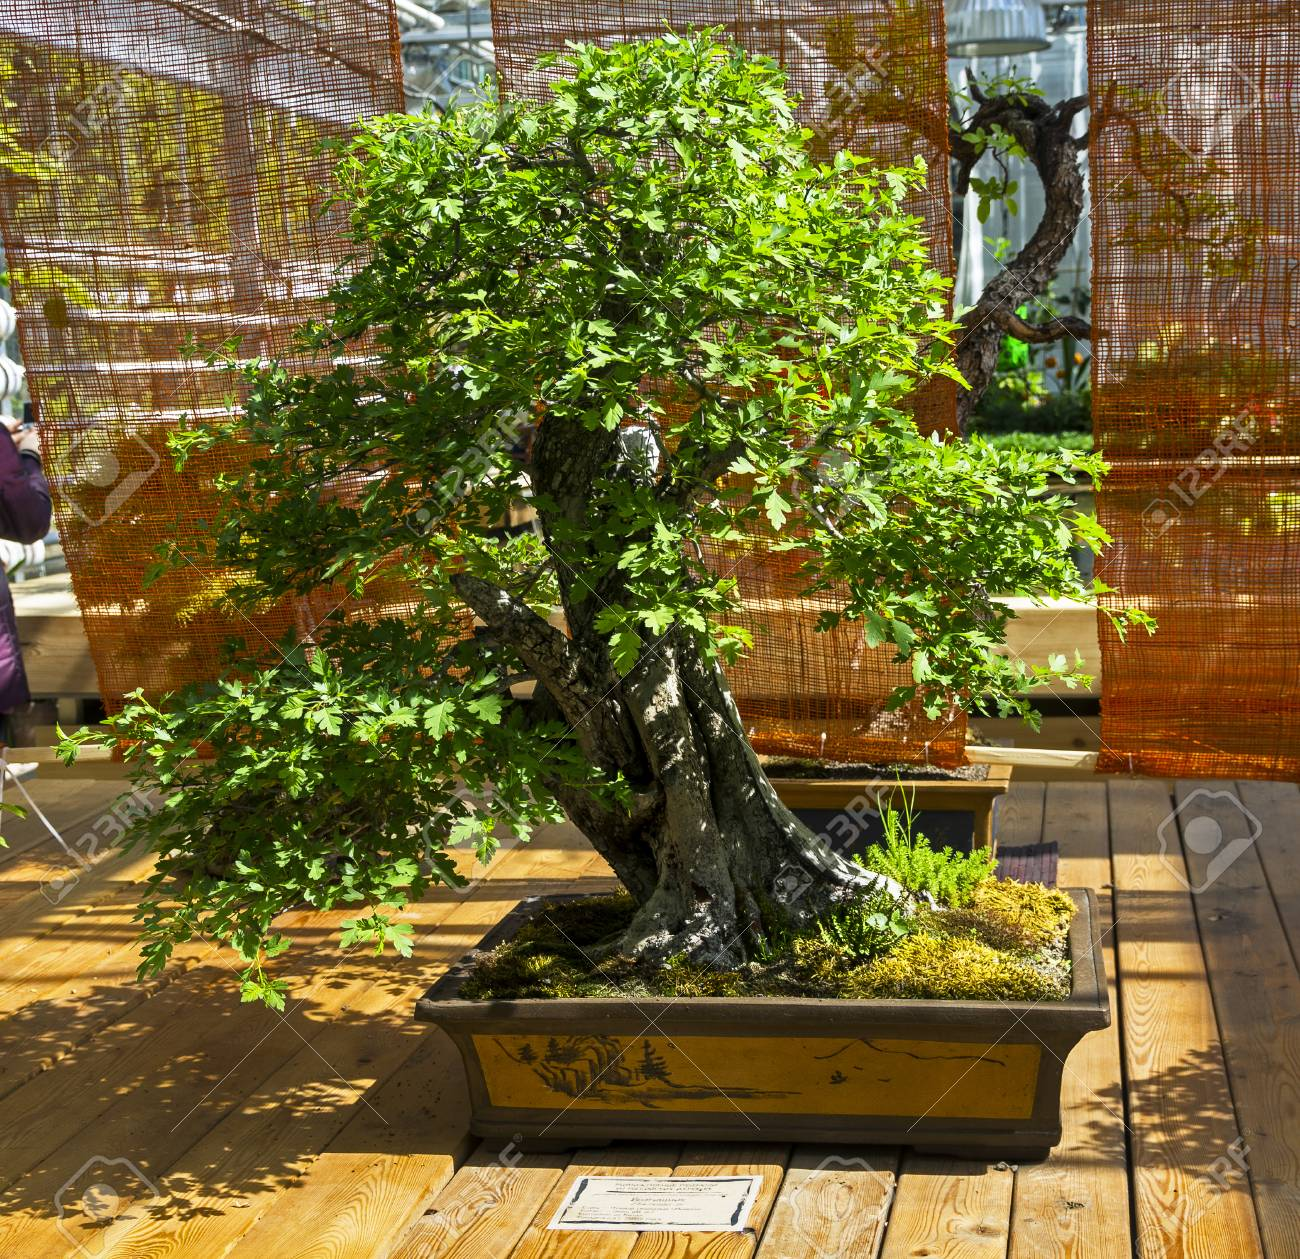 May Tree Crataegus Bonsai In The Style Of Straight And Free Stock Photo Picture And Royalty Free Image Image 81629602